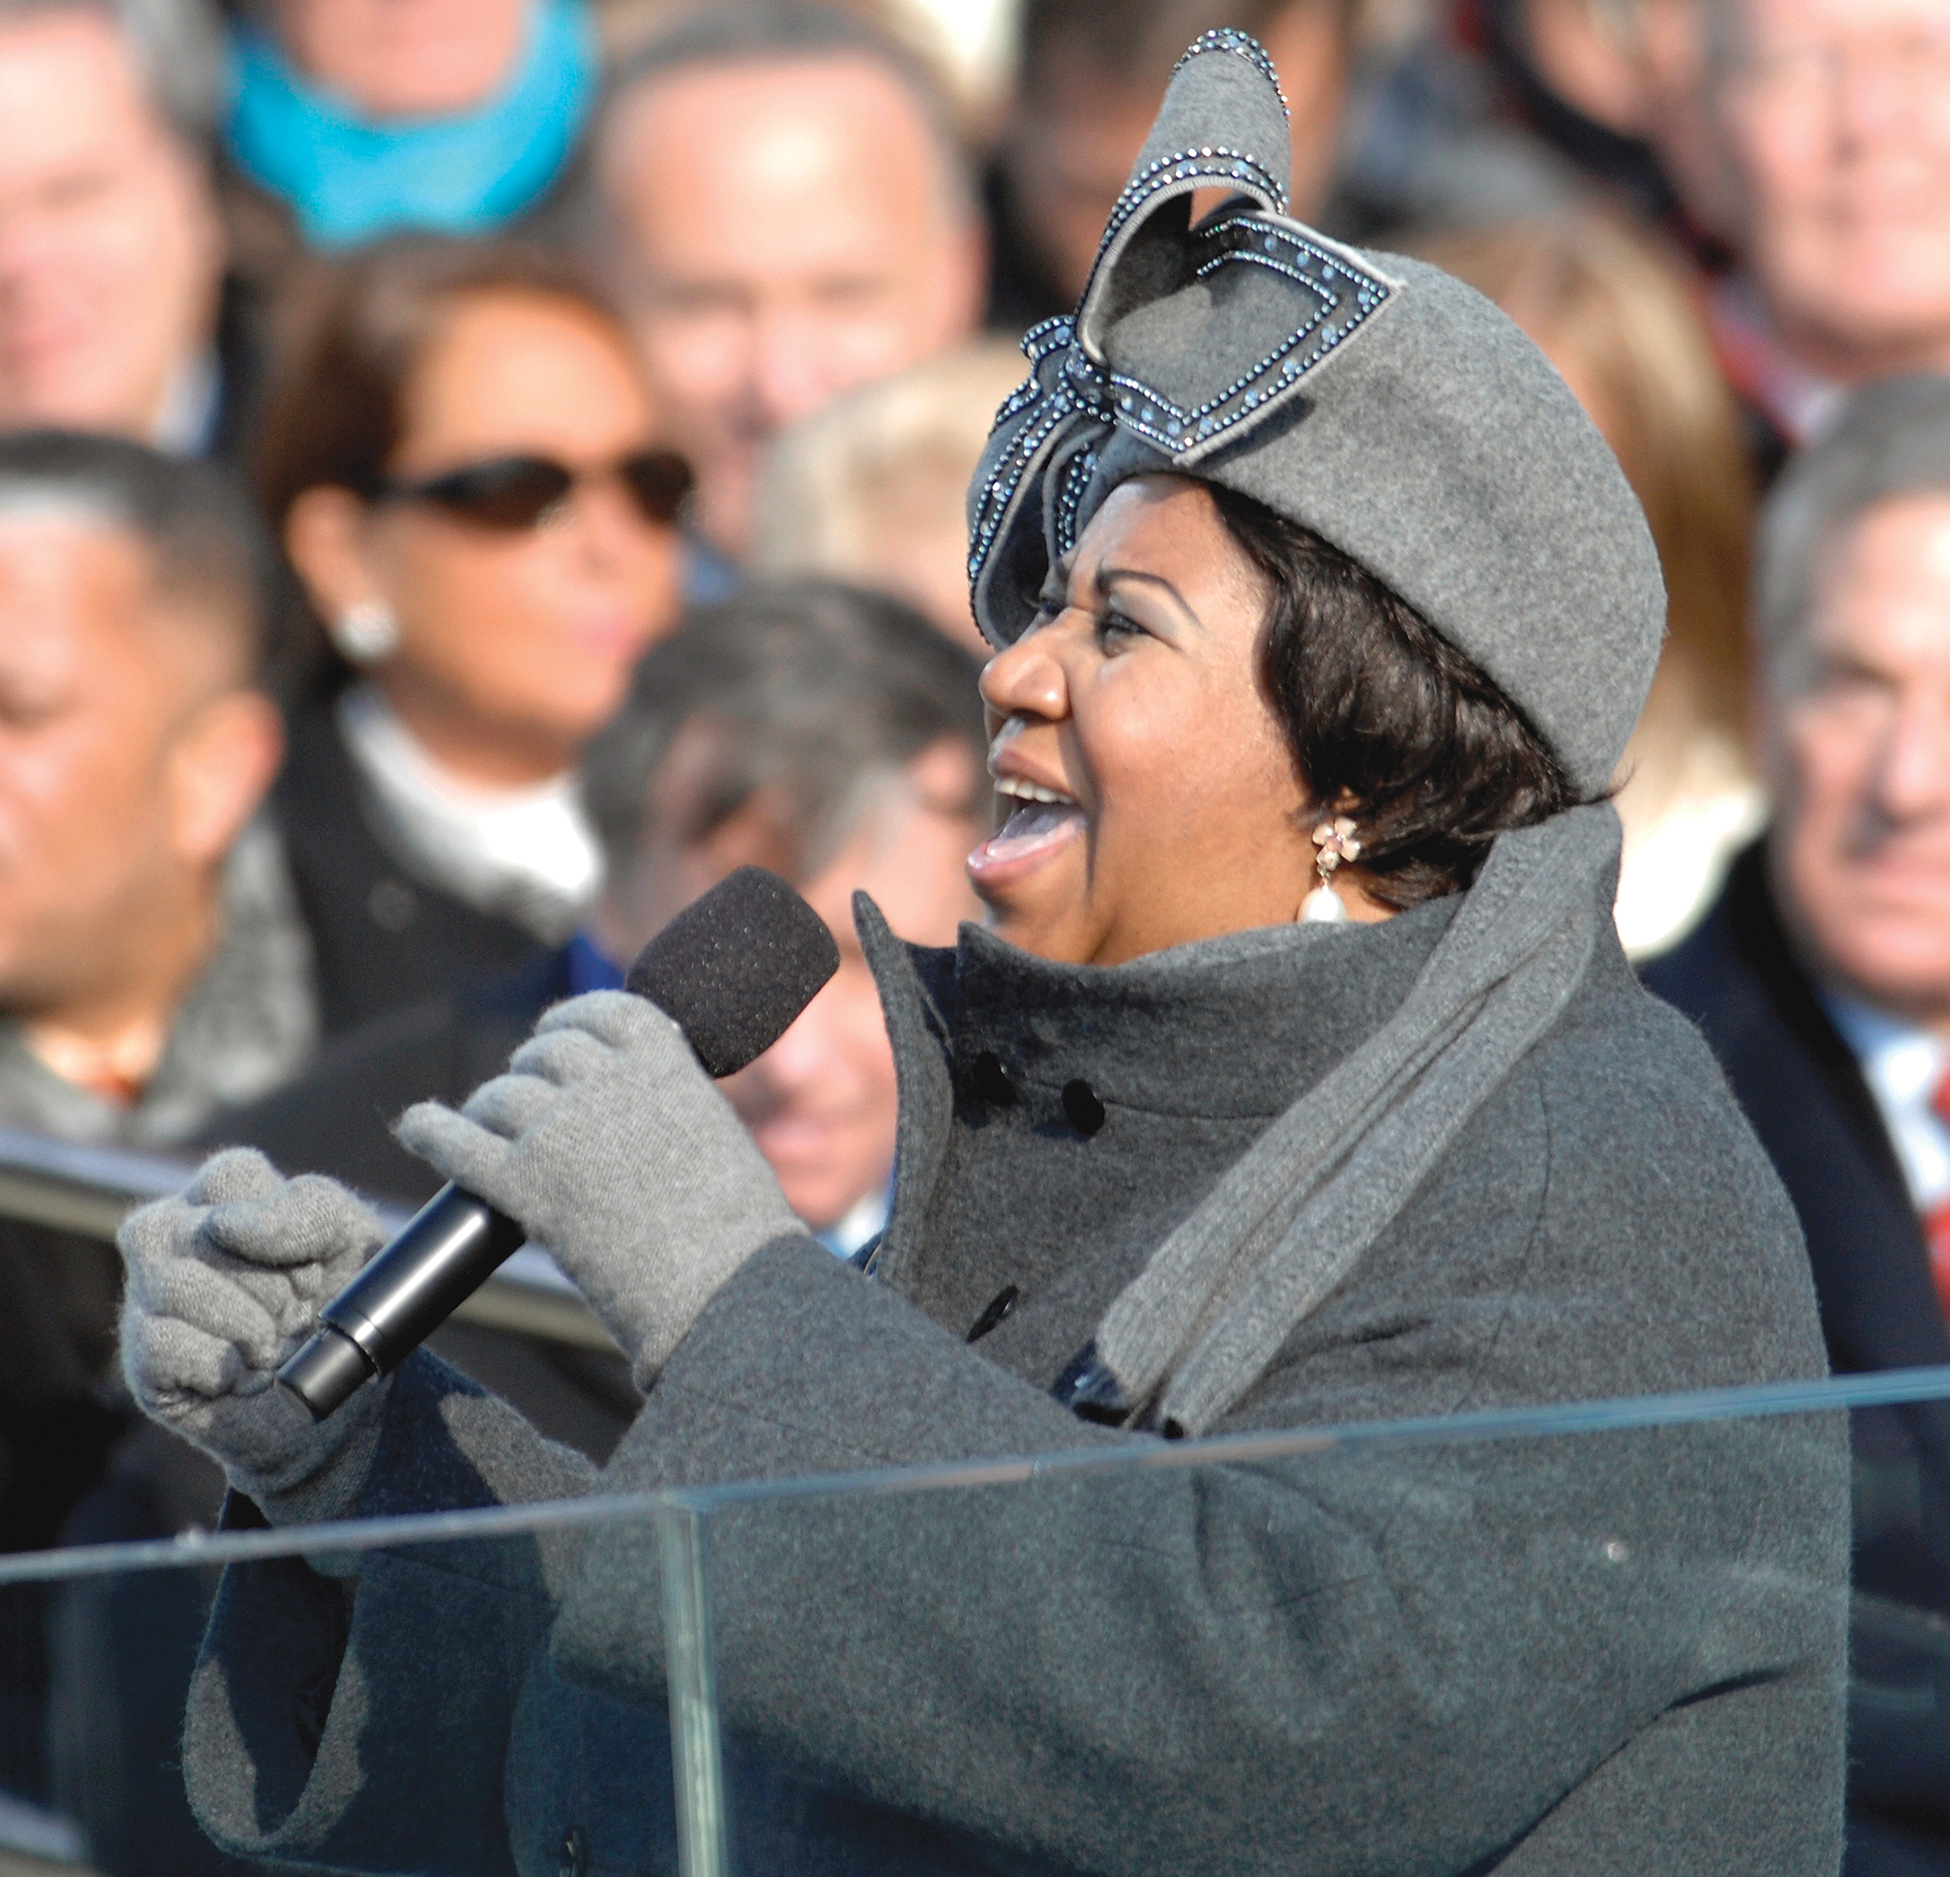 Queen of Soul Aretha Franklin died on August 16, 2018. The Grammy Award-winning artist was 76. (Wikimedia Commons)